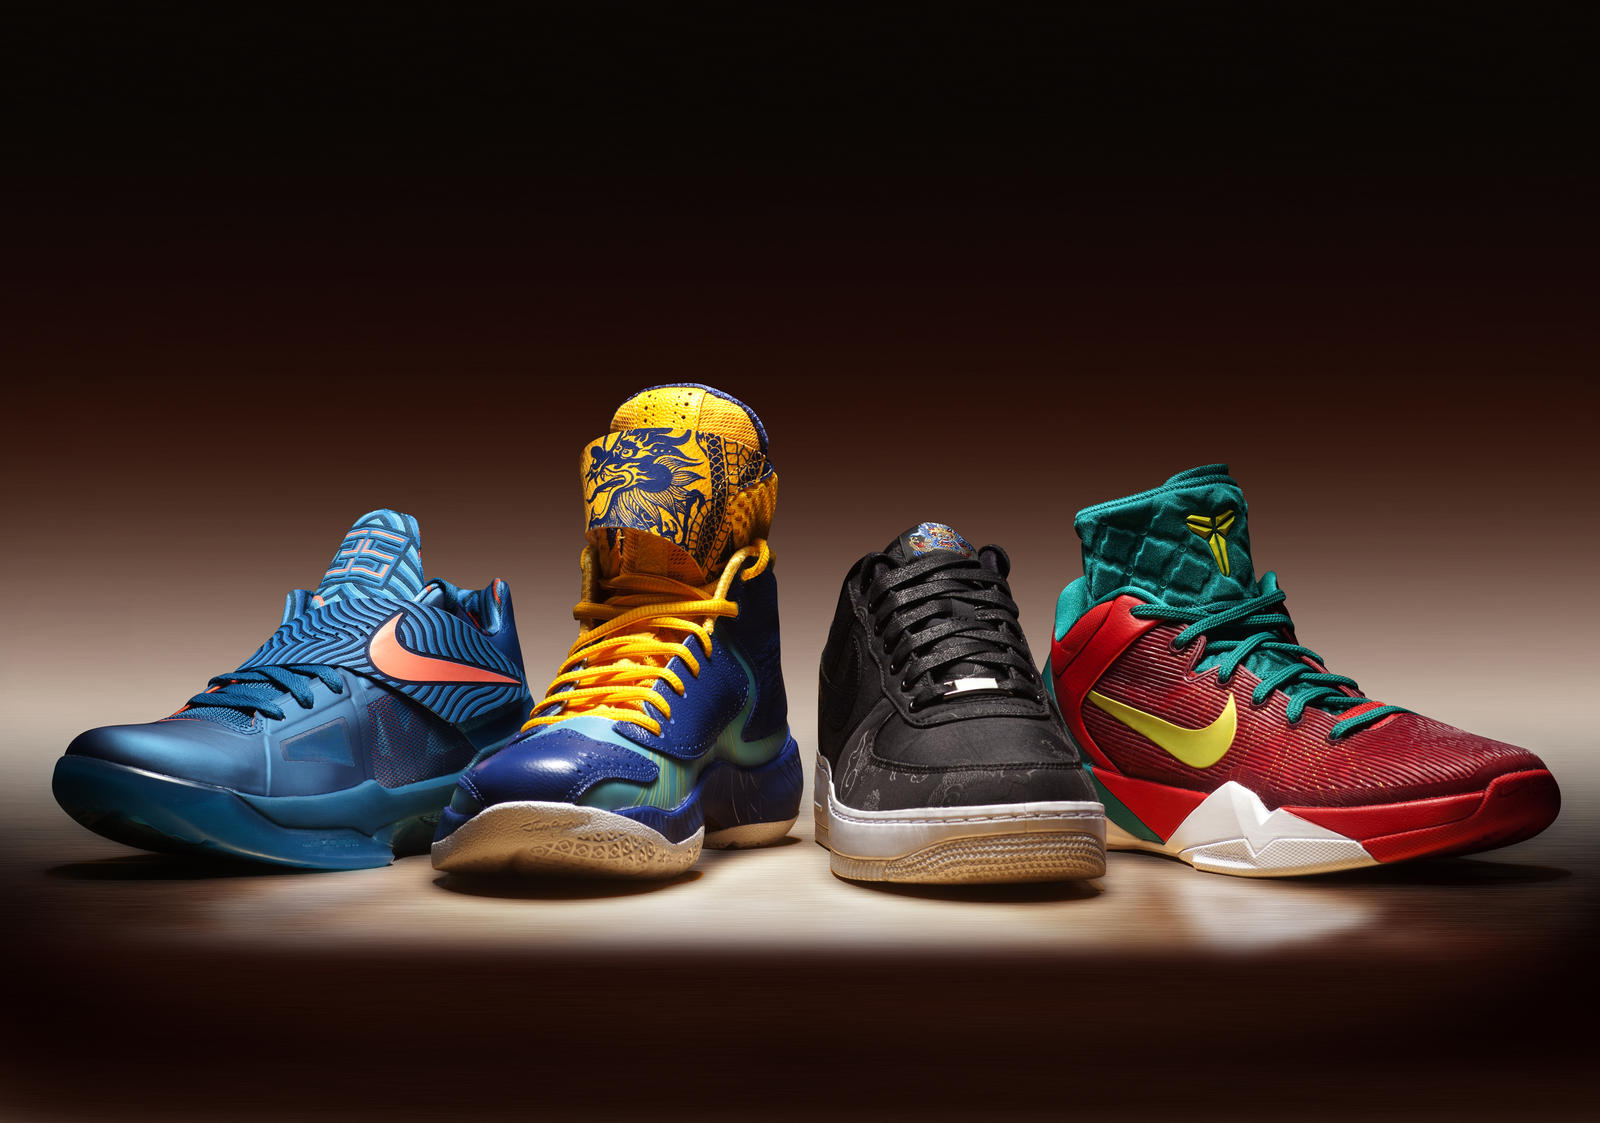 Nike introduces 'Year of the Dragon' collection - Nike News